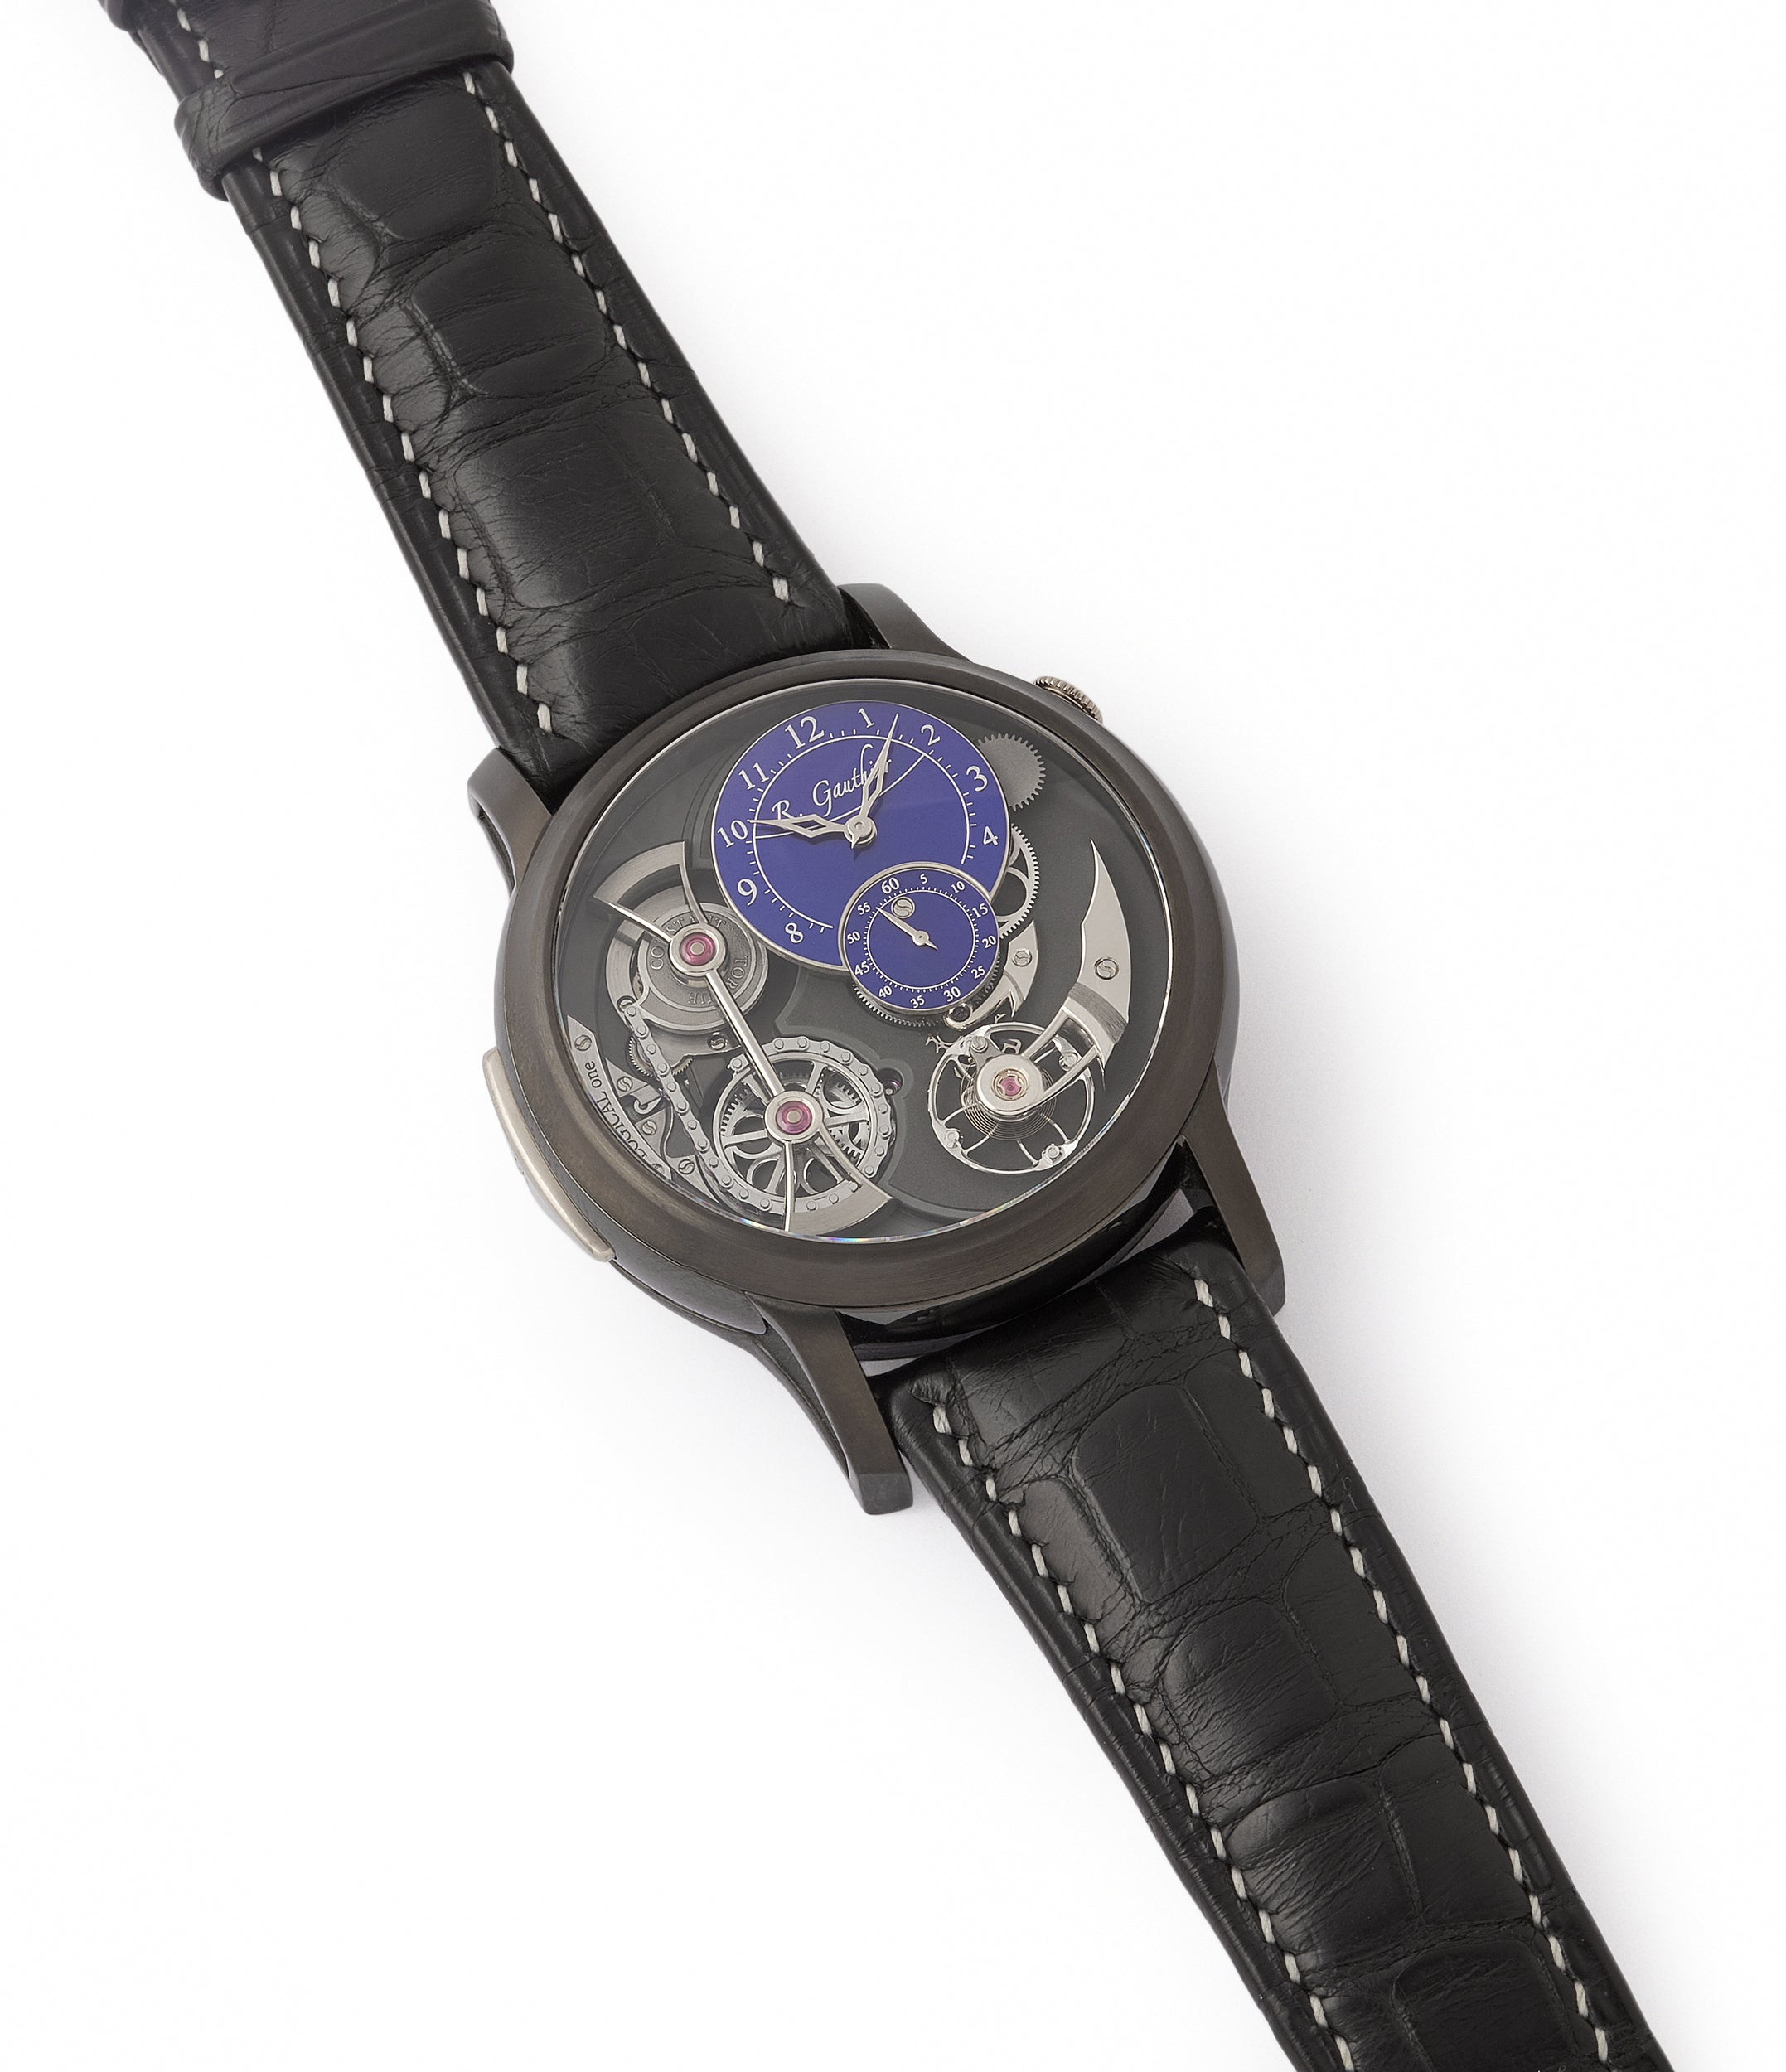 shop Romain Gauthier Limited Edition Logical One BTG titanium watch blue enamel dial for sale online at A Collected Man London UK specialist of independent watchmakers